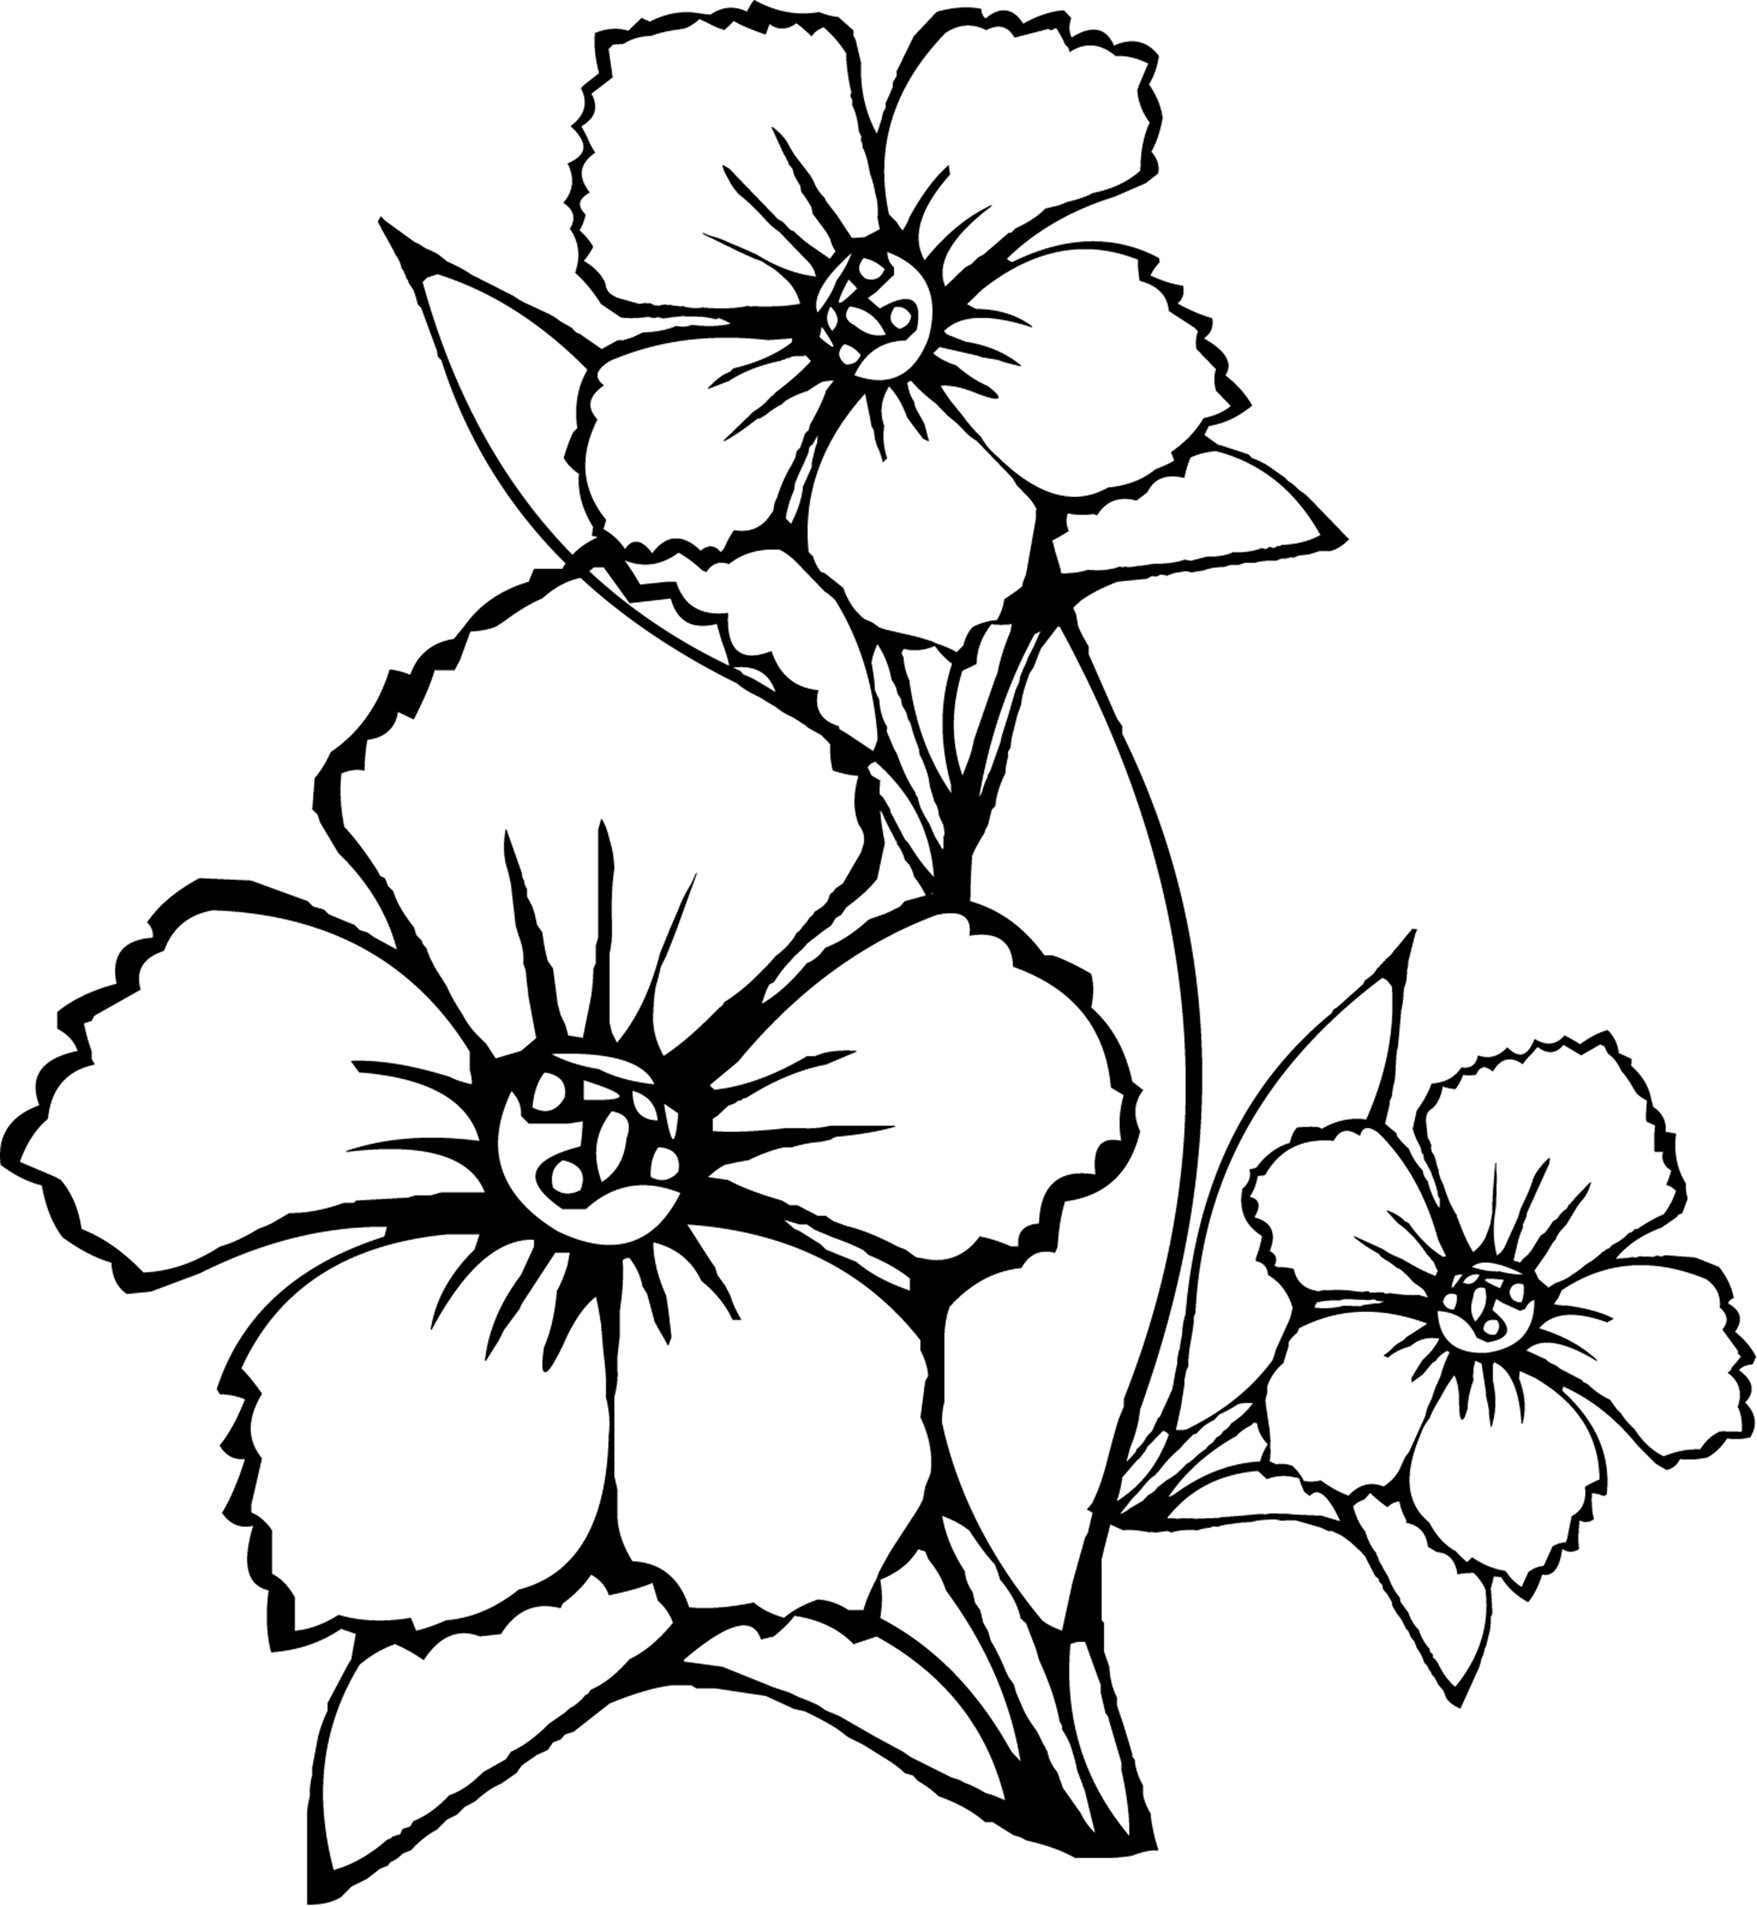 flowers to color and print free printable flower coloring pages for kids best to flowers print color and